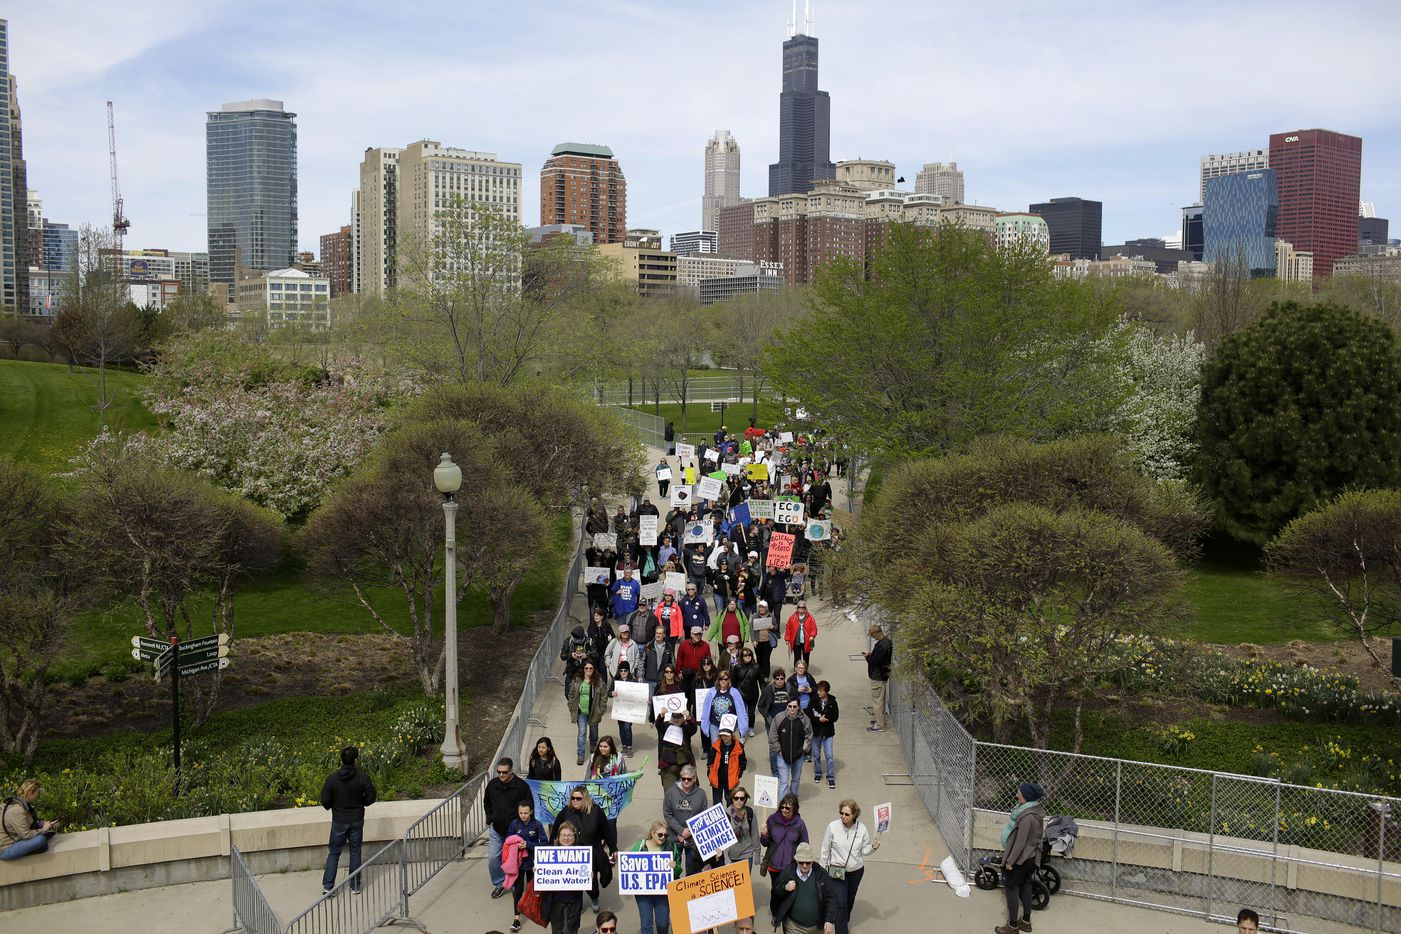 Demonstrators attend the March for Science in Chicago, April 22, 2017. Thousands of scientists and science advocates demonstrated in Washington and in smaller events around the world to support, defend and celebrate the scientific enterprise. (Joshua Lott/The New York Times)